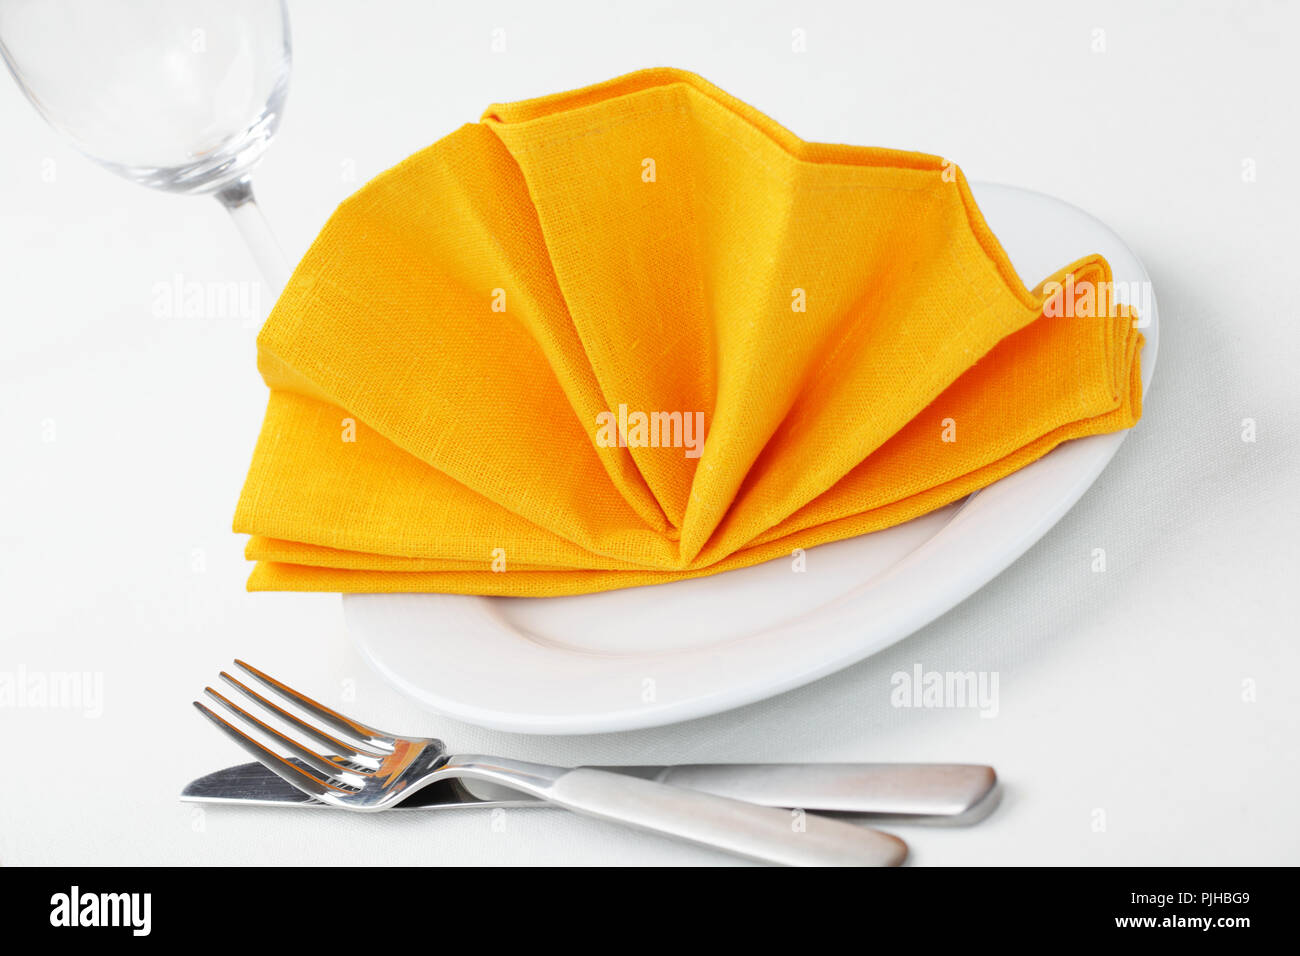 Table Setting With Napkin Folded As A Fan Stock Photo Alamy